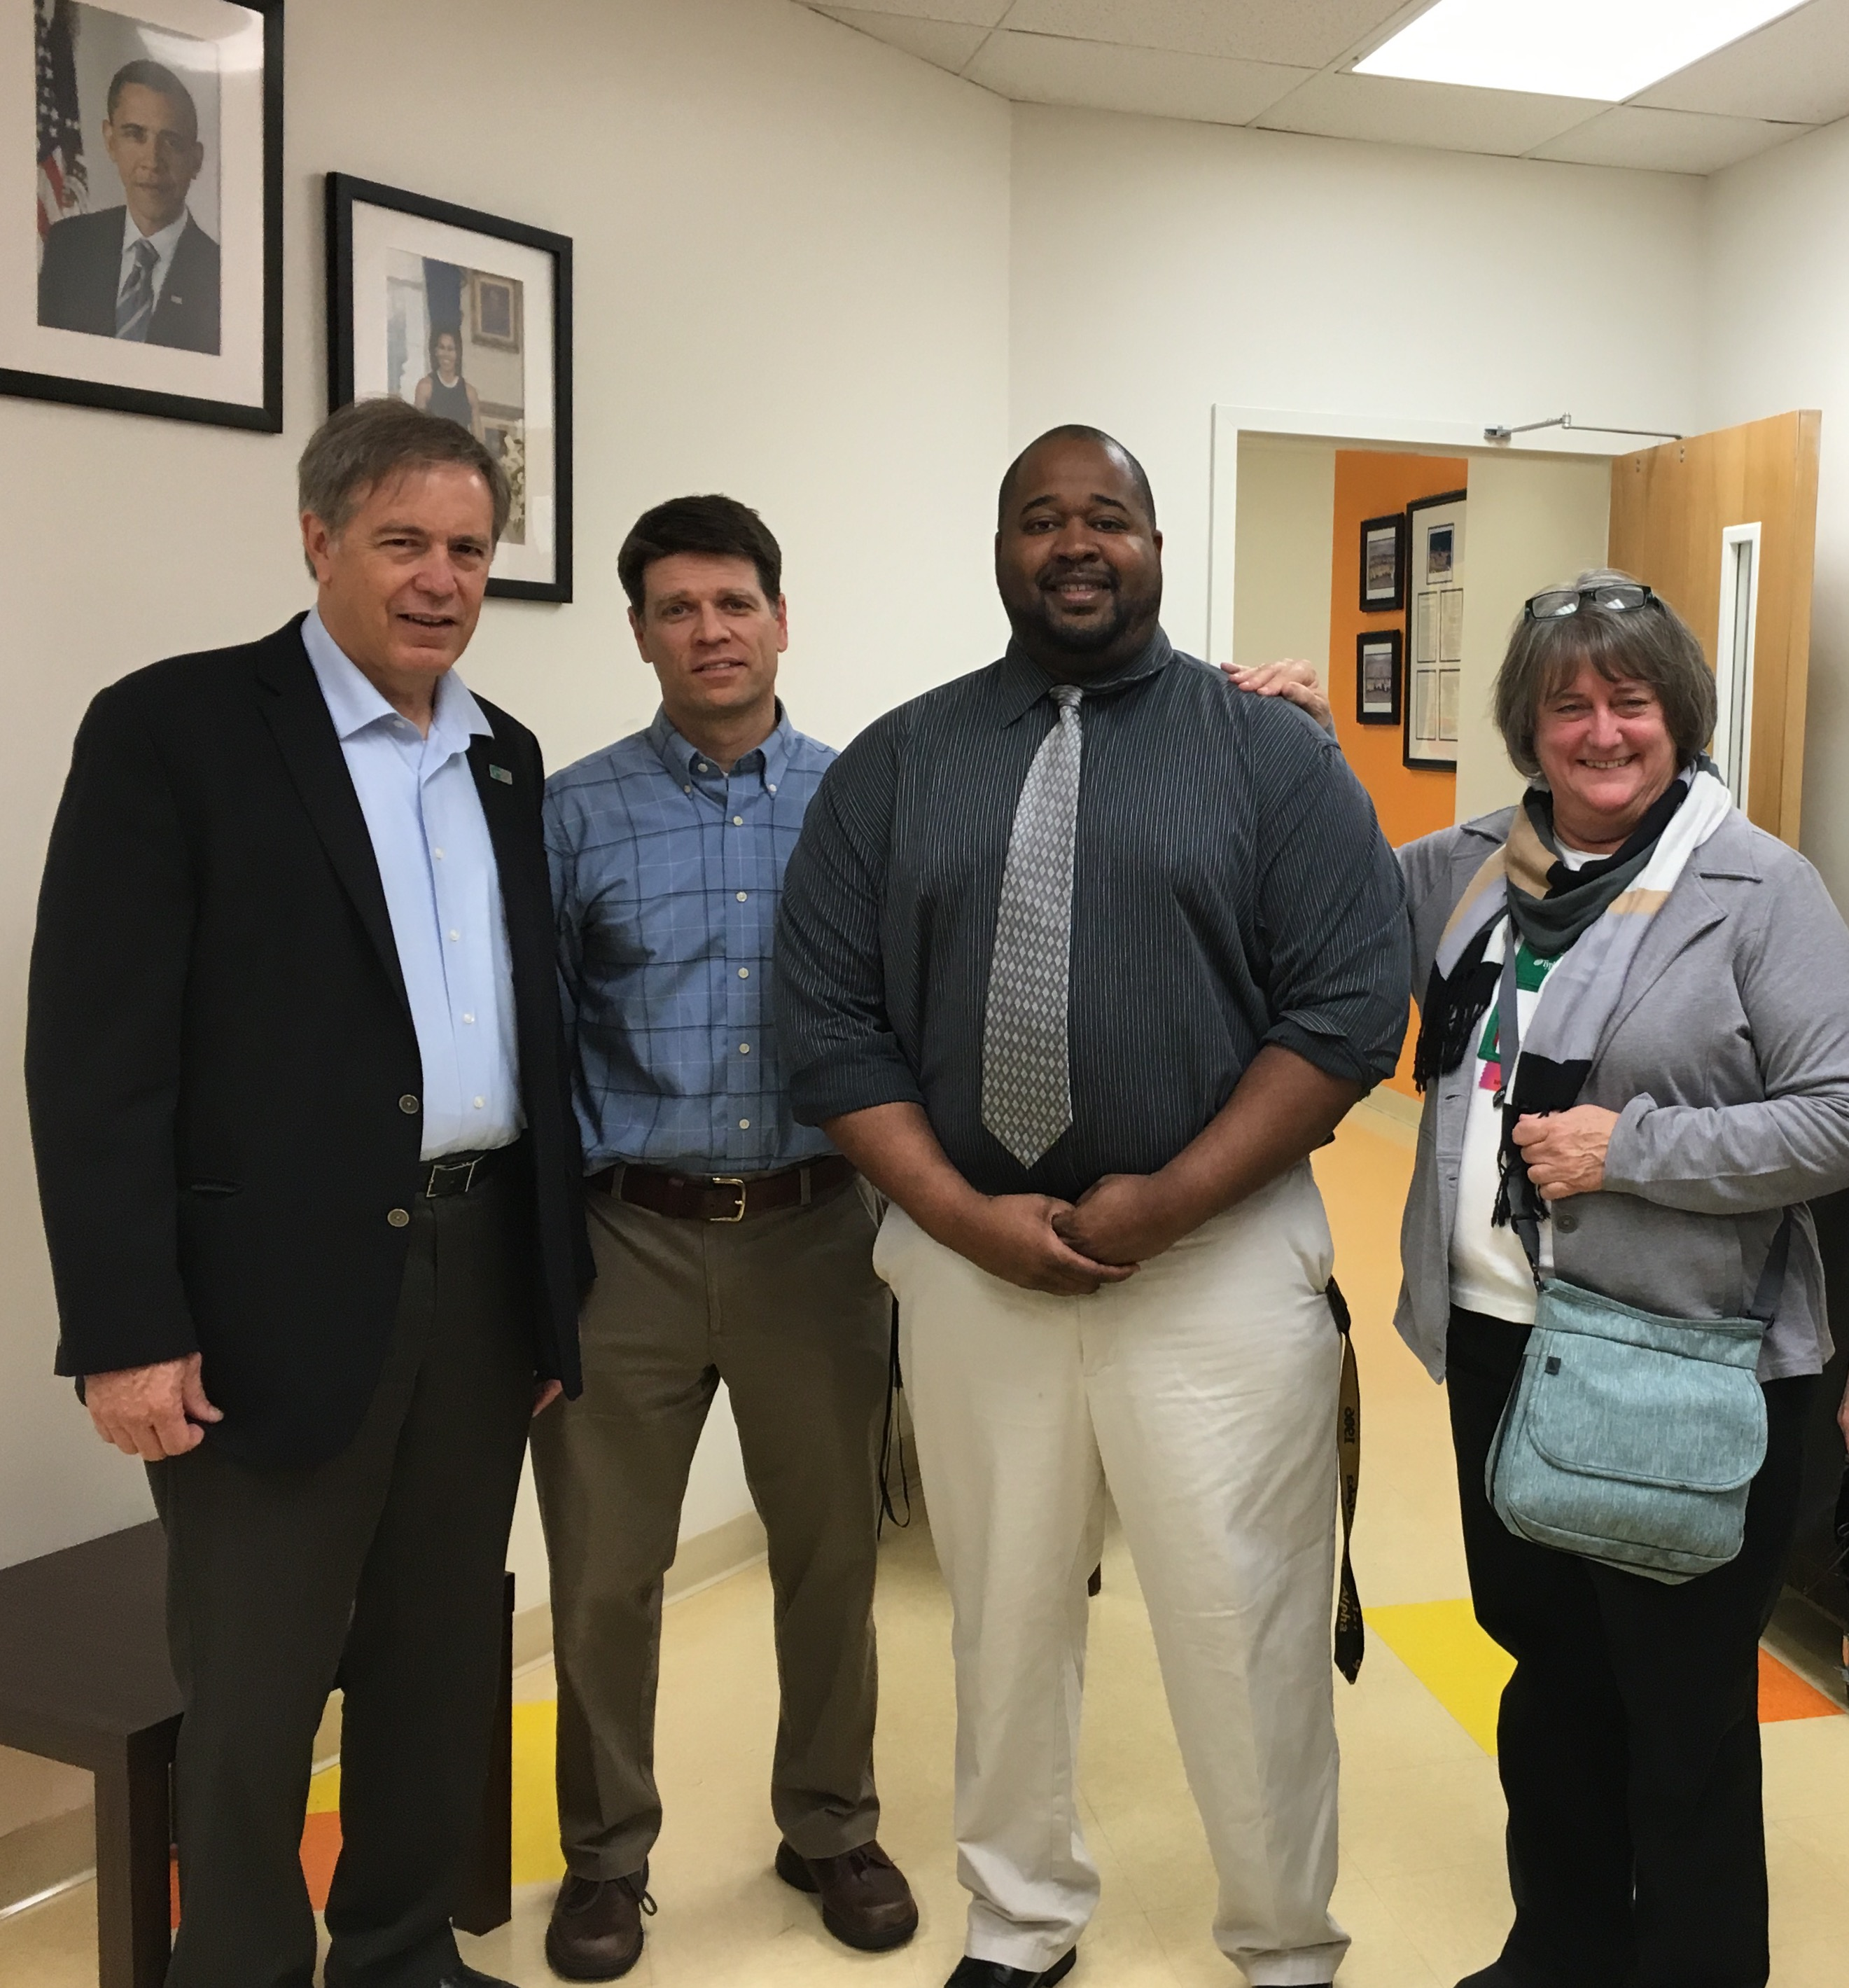 Marv Sparrell, Jared Papa, Denise Bowen, and a counselor from the National Collegiate Preparatory Public Charter School